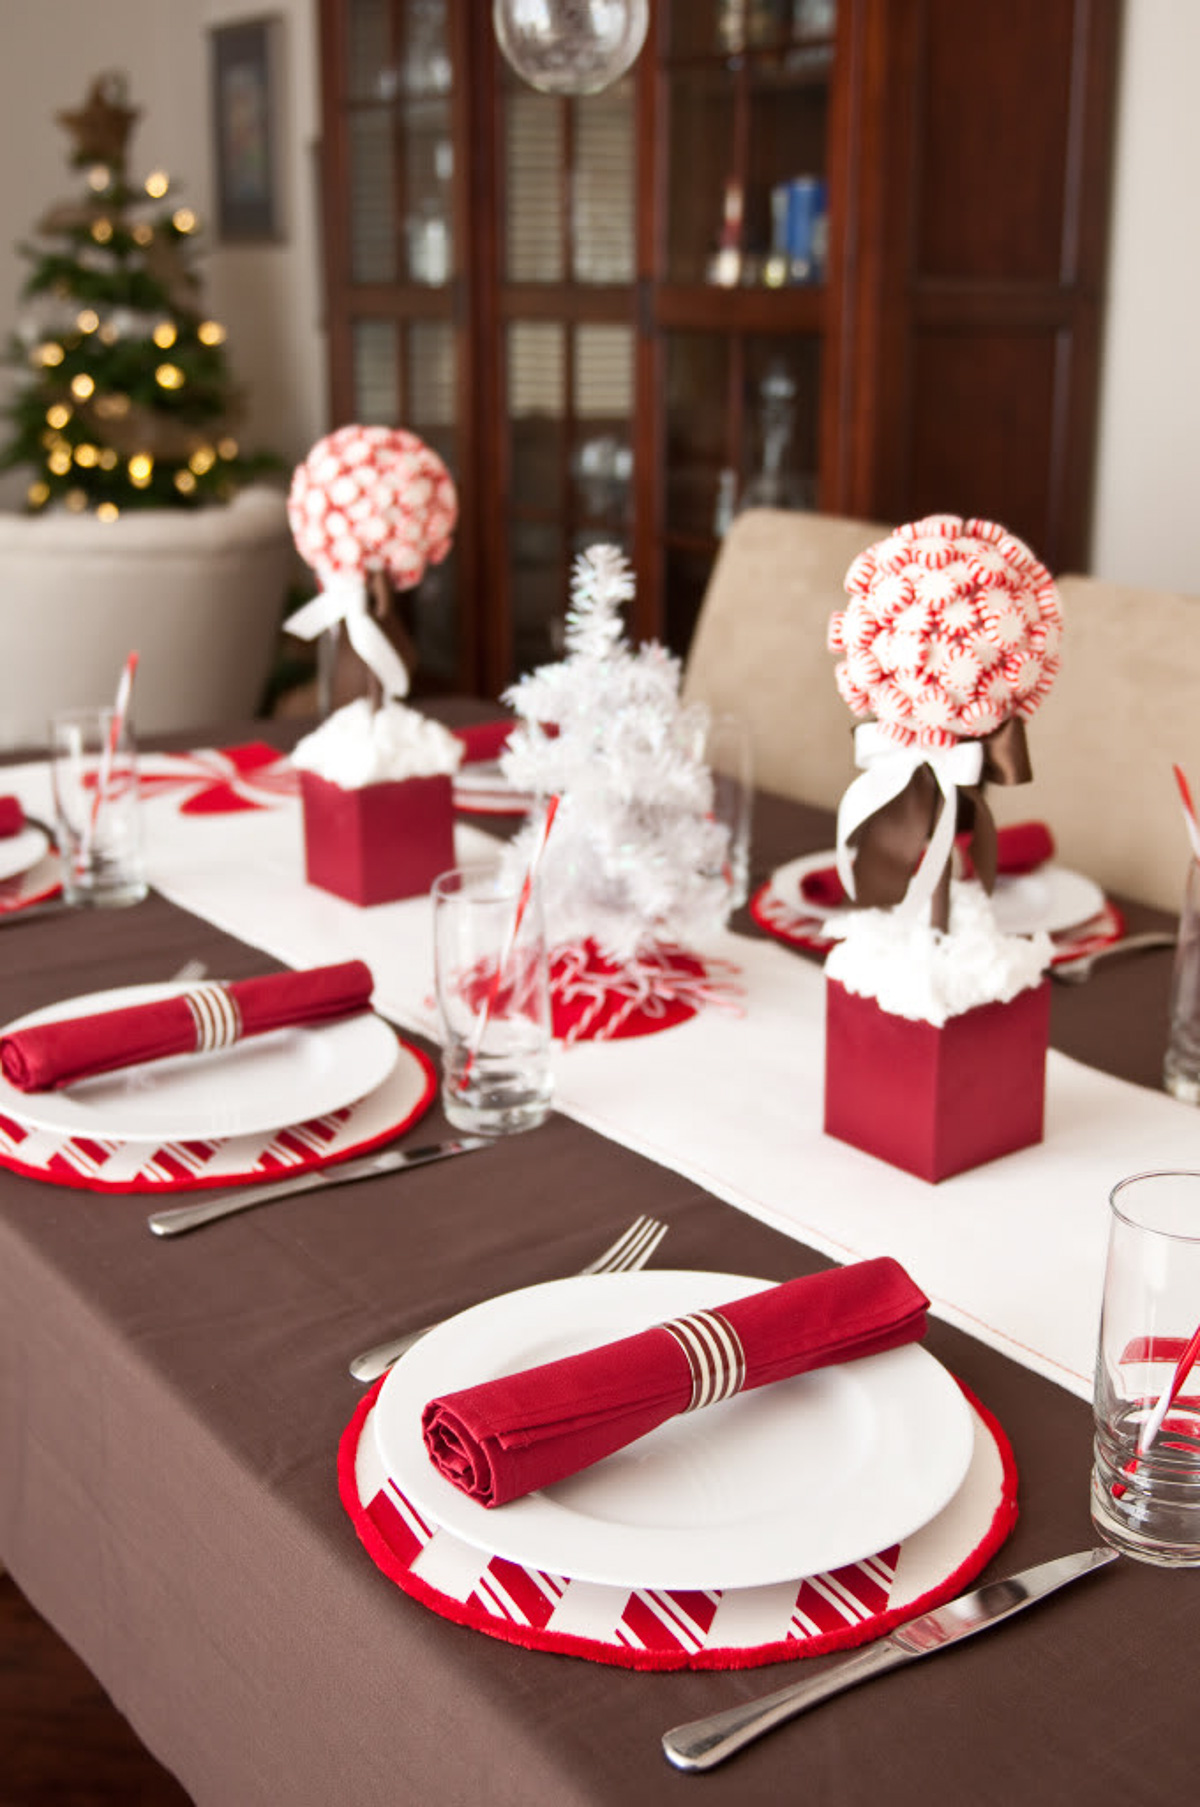 Christmas table decorations ideas make - Cindy Lou Who Table Toppers